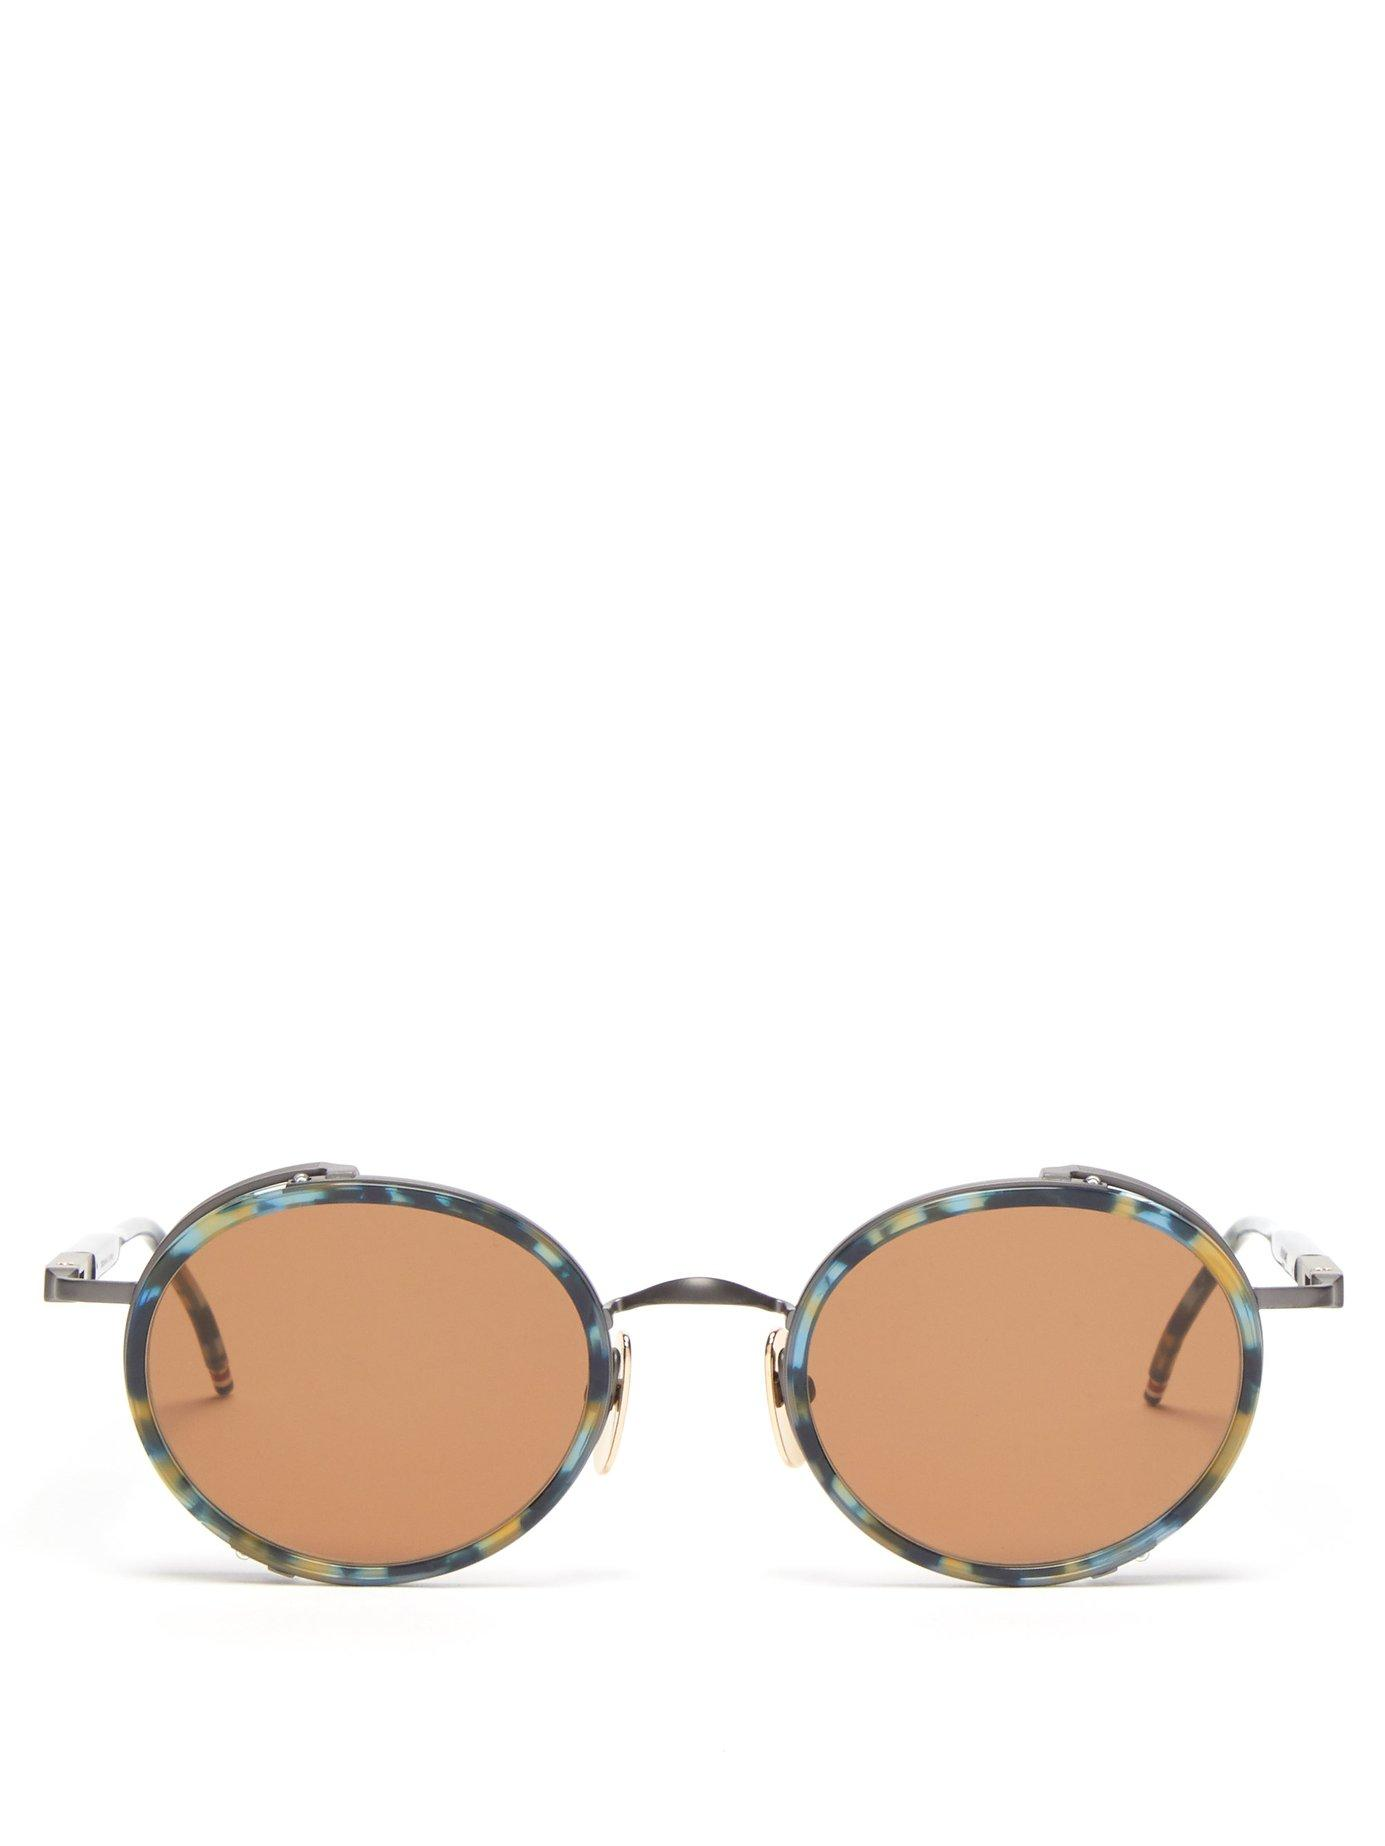 36bccc453dc Lyst - Thom Browne Round Frame Acetate And Metal Sunglasses for Men